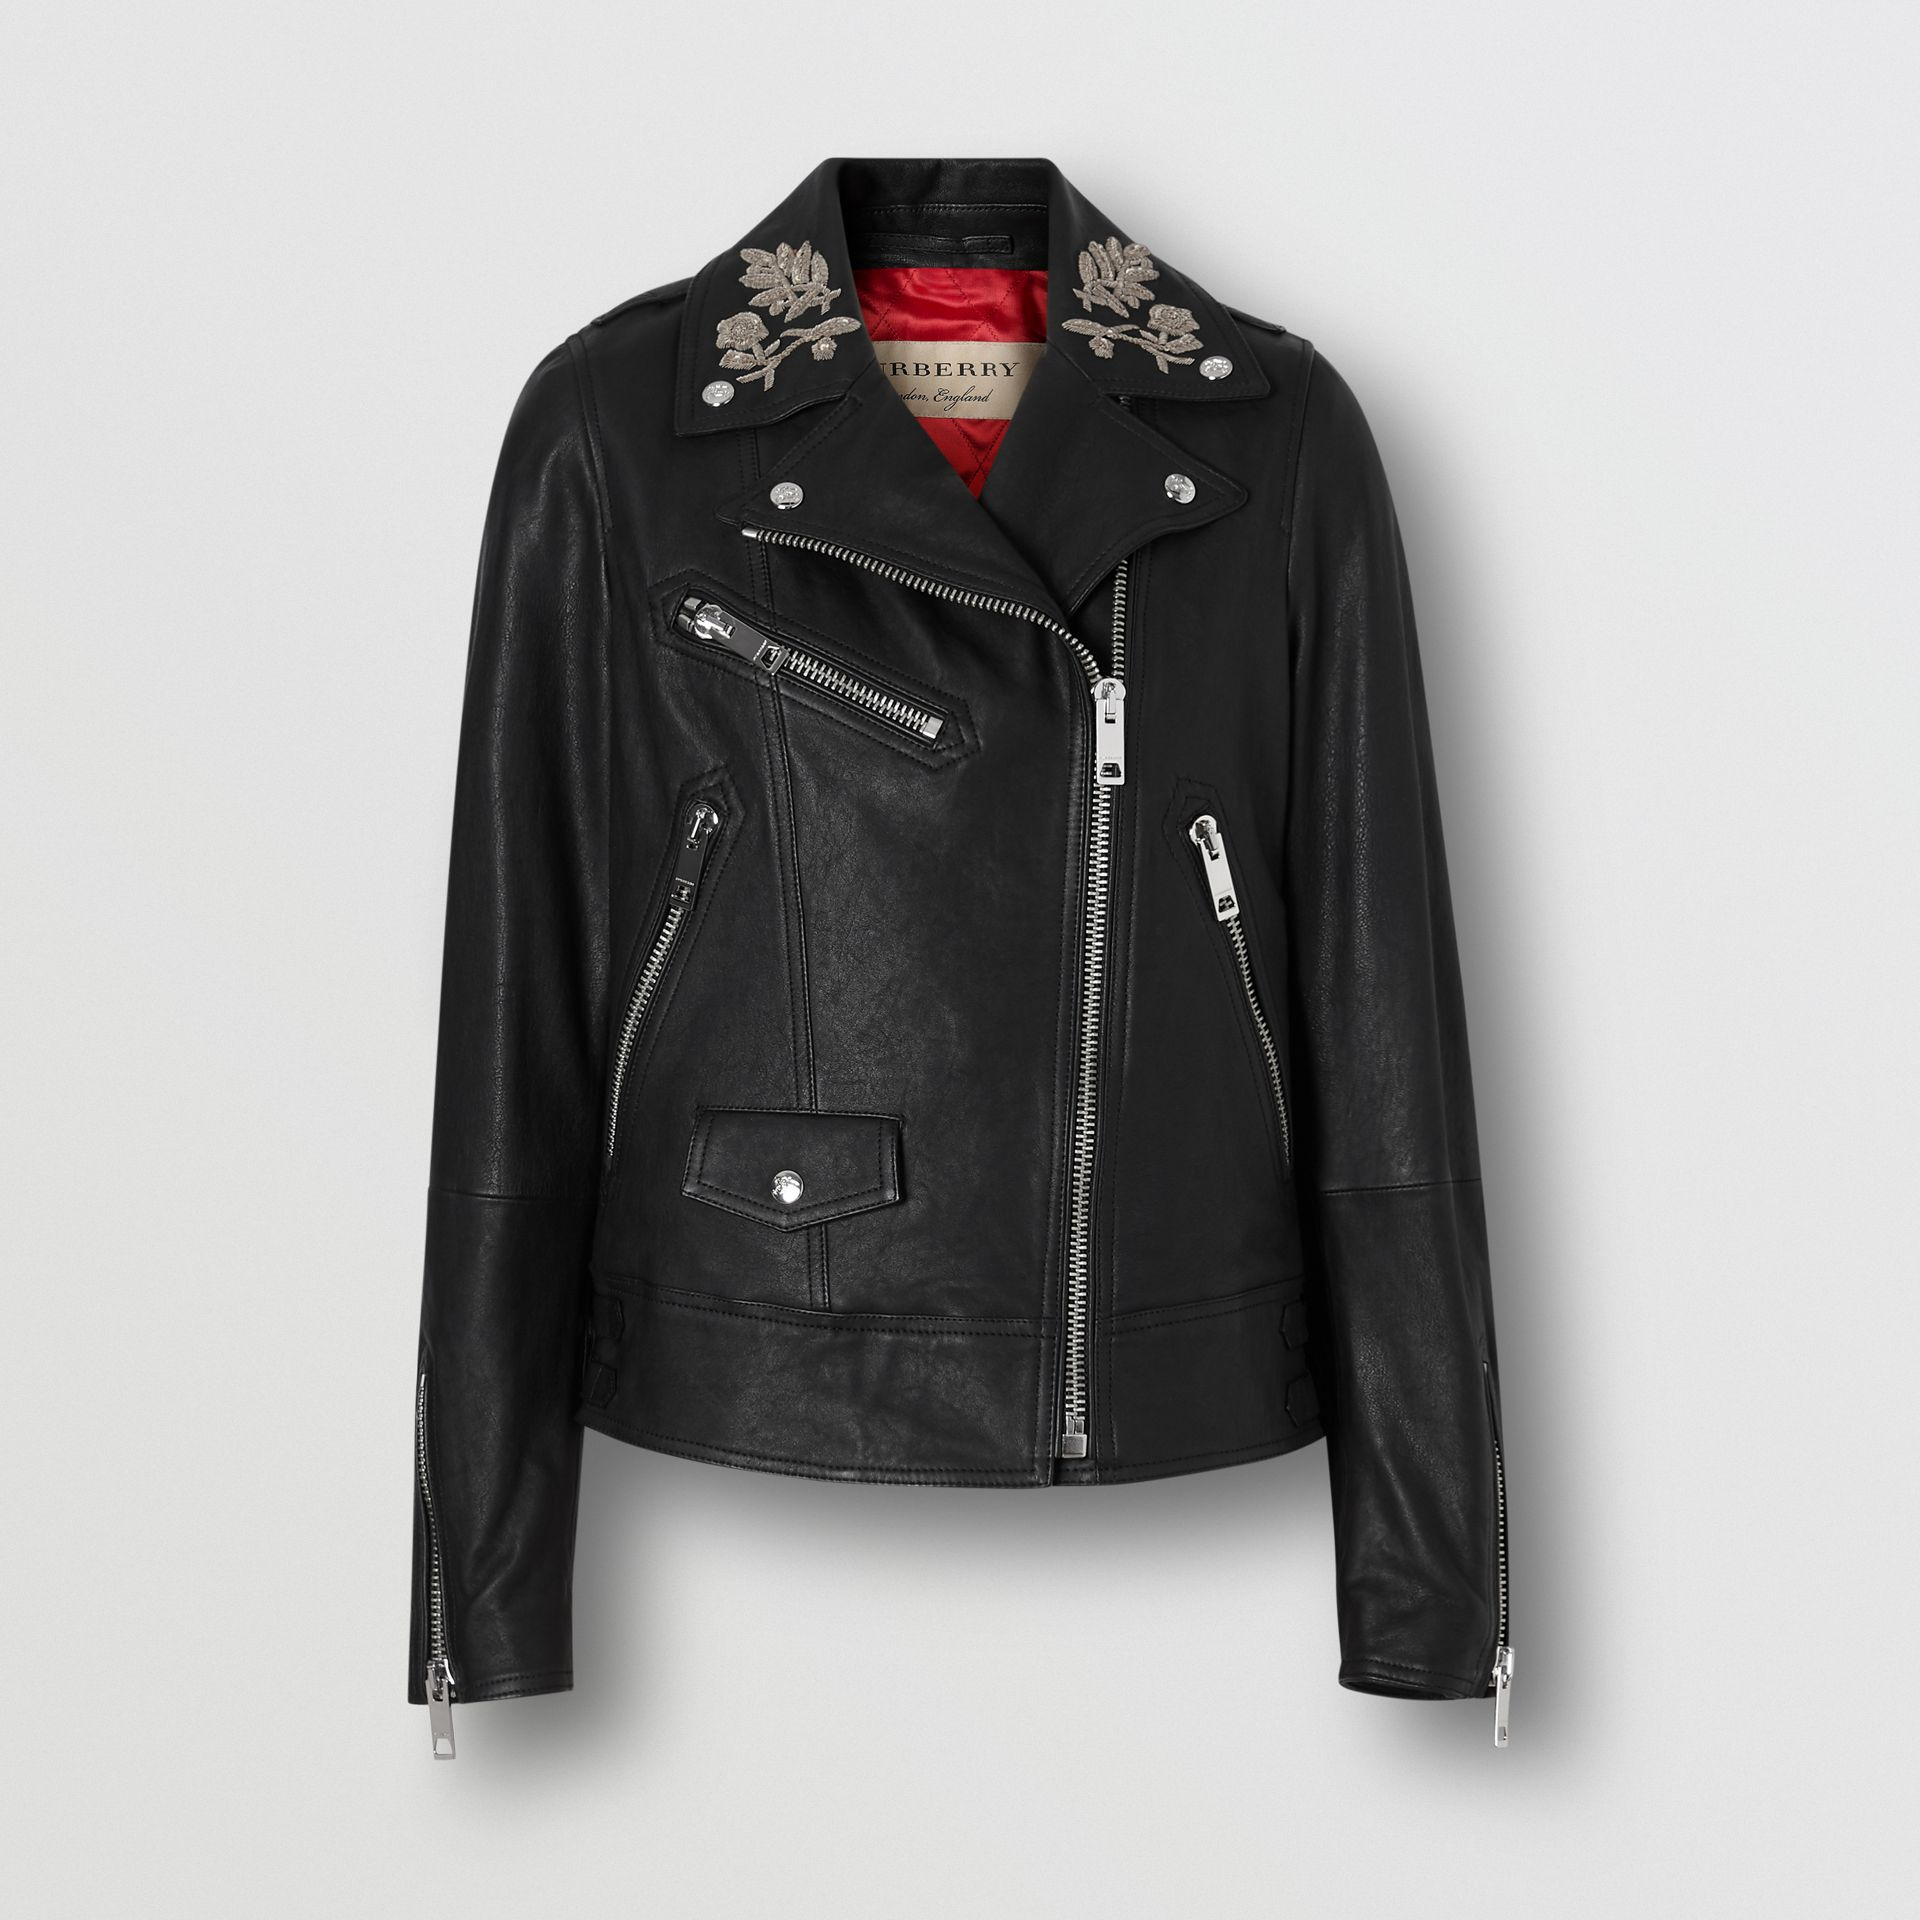 Bullion Floral Lambskin Biker Jacket in Black - Women | Burberry - gallery image 3